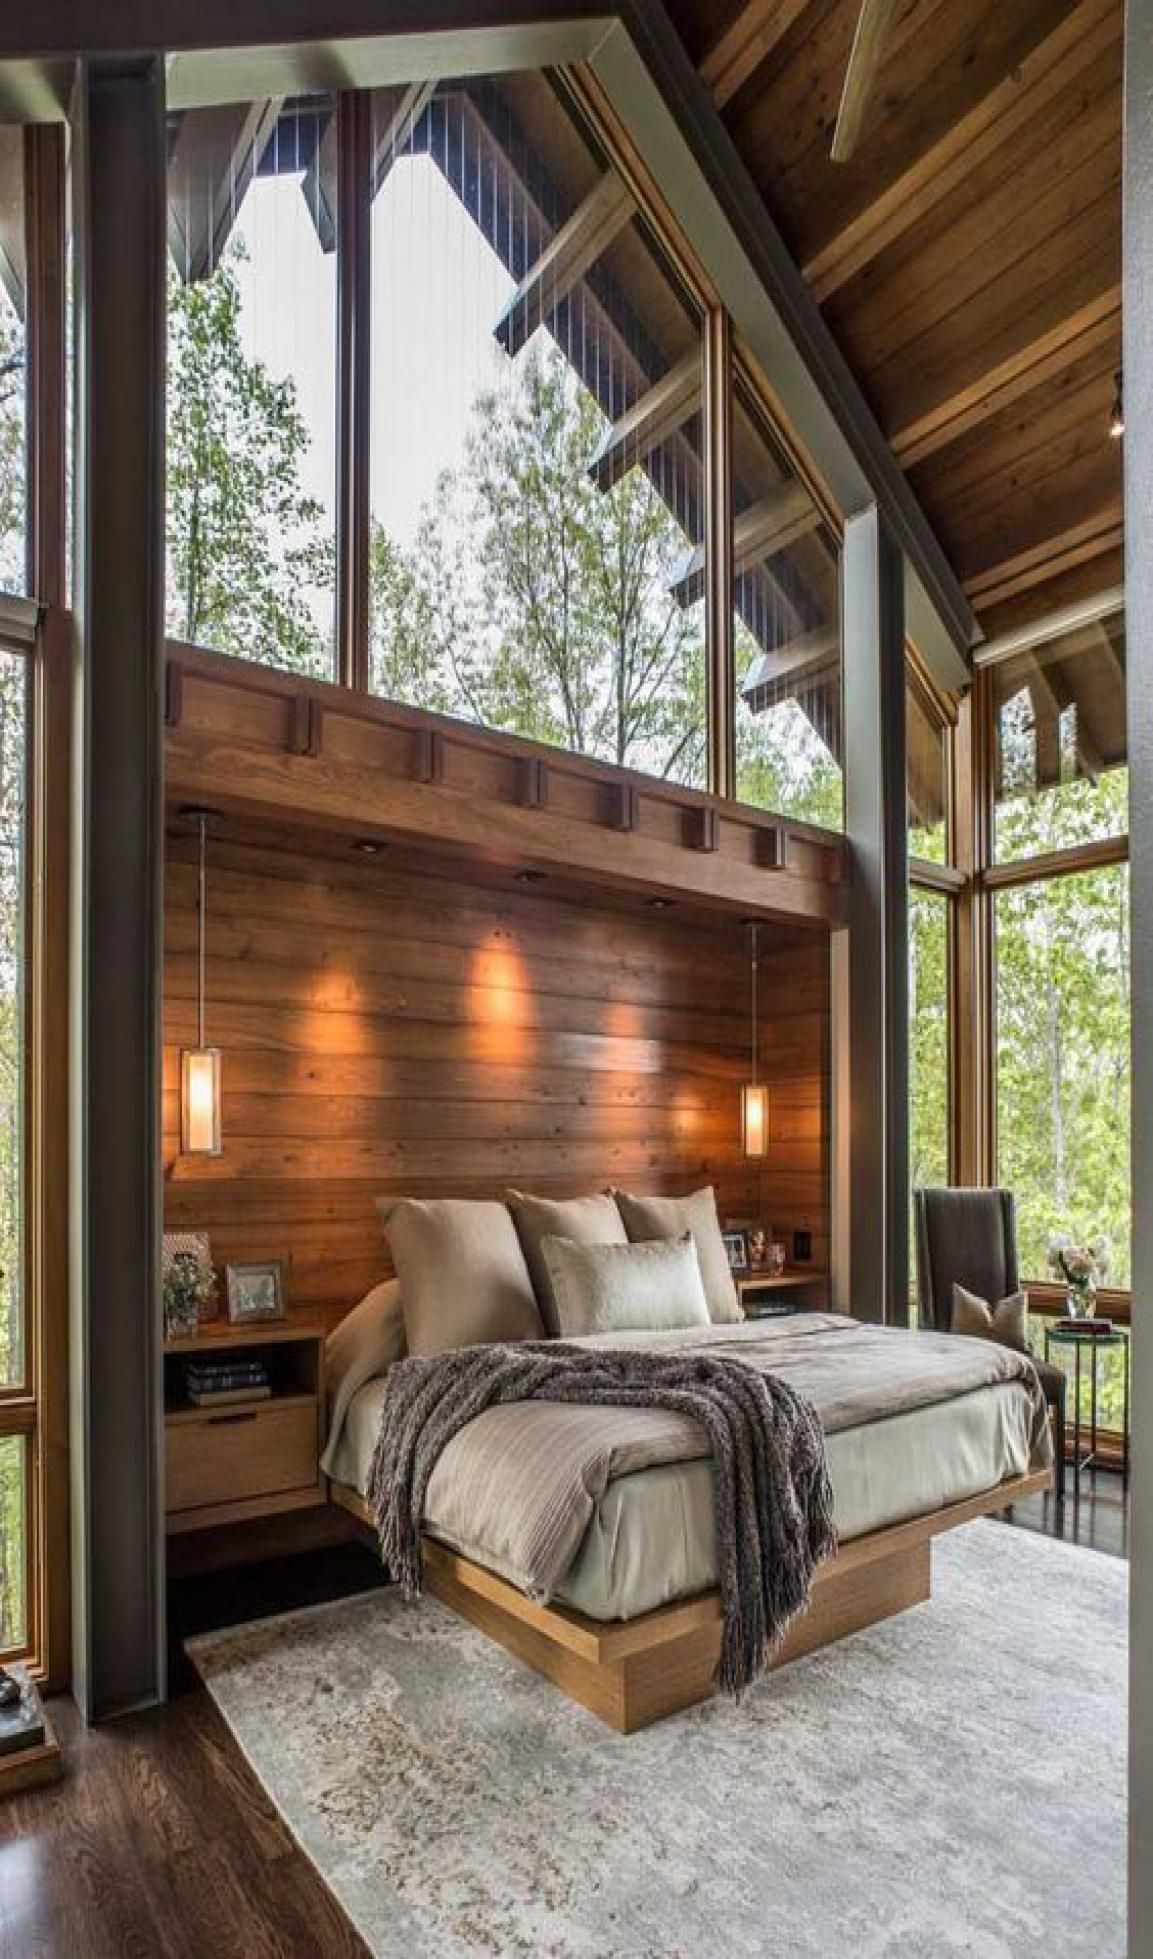 45 awesome minimalist bedroom design ideas in 2020 on modern cozy mountain home design ideas id=72591